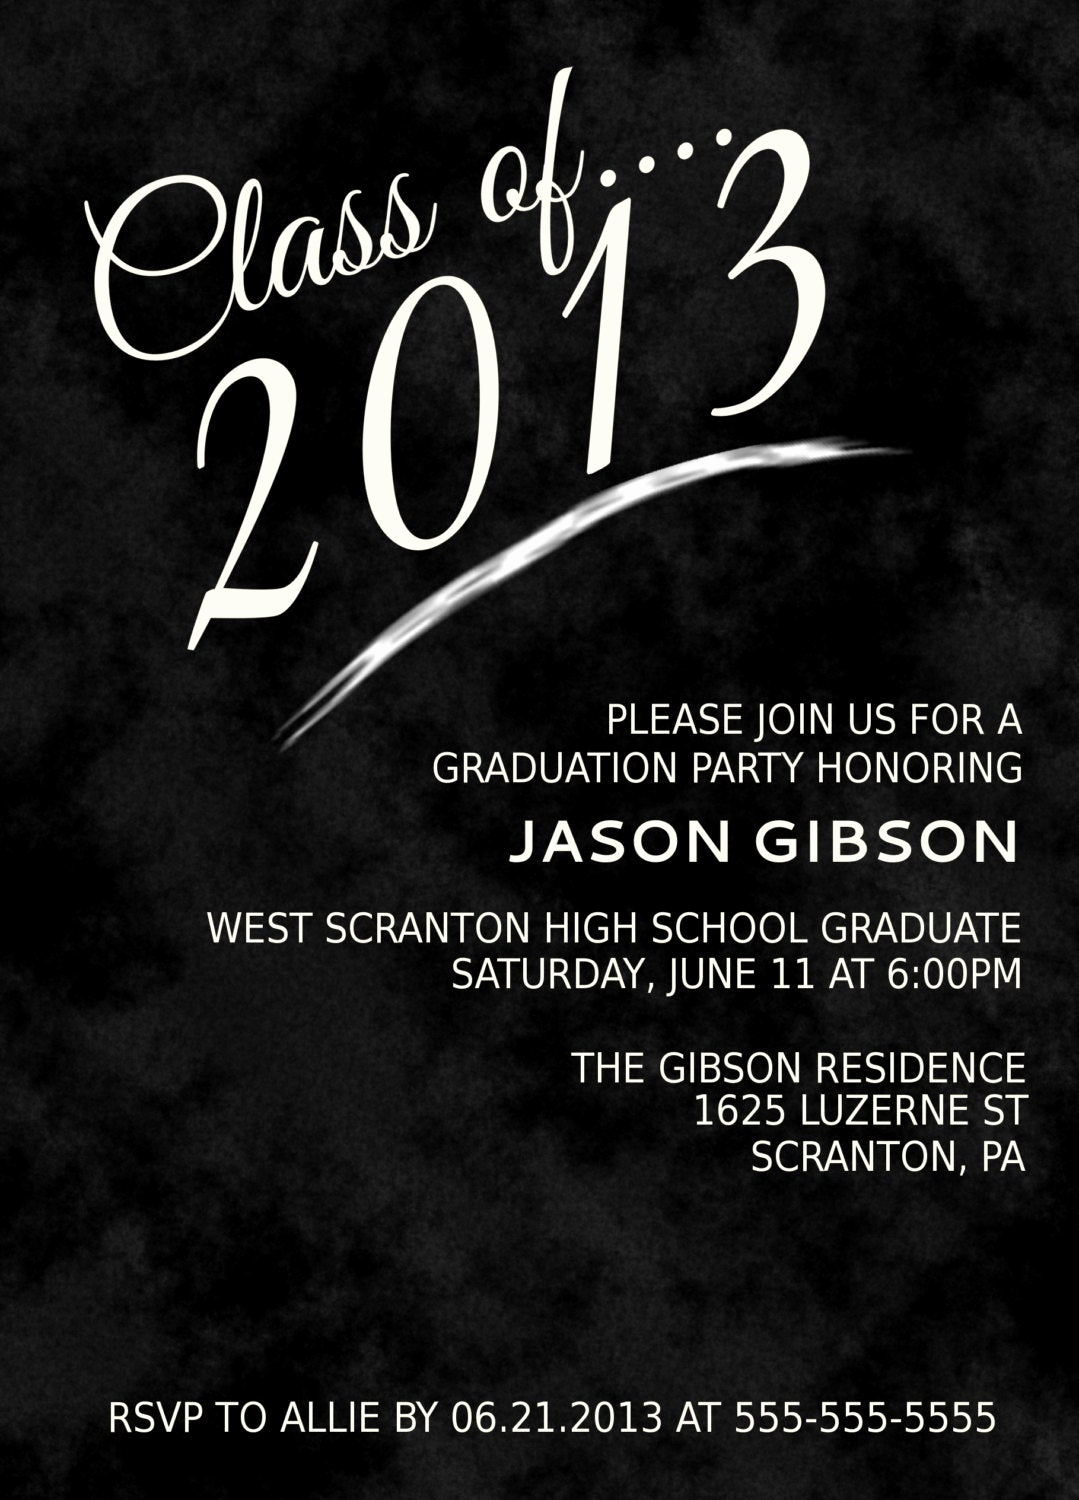 Printable Graduation Party Invitation Best Of Printable Graduation Party Invitation Announcement Various